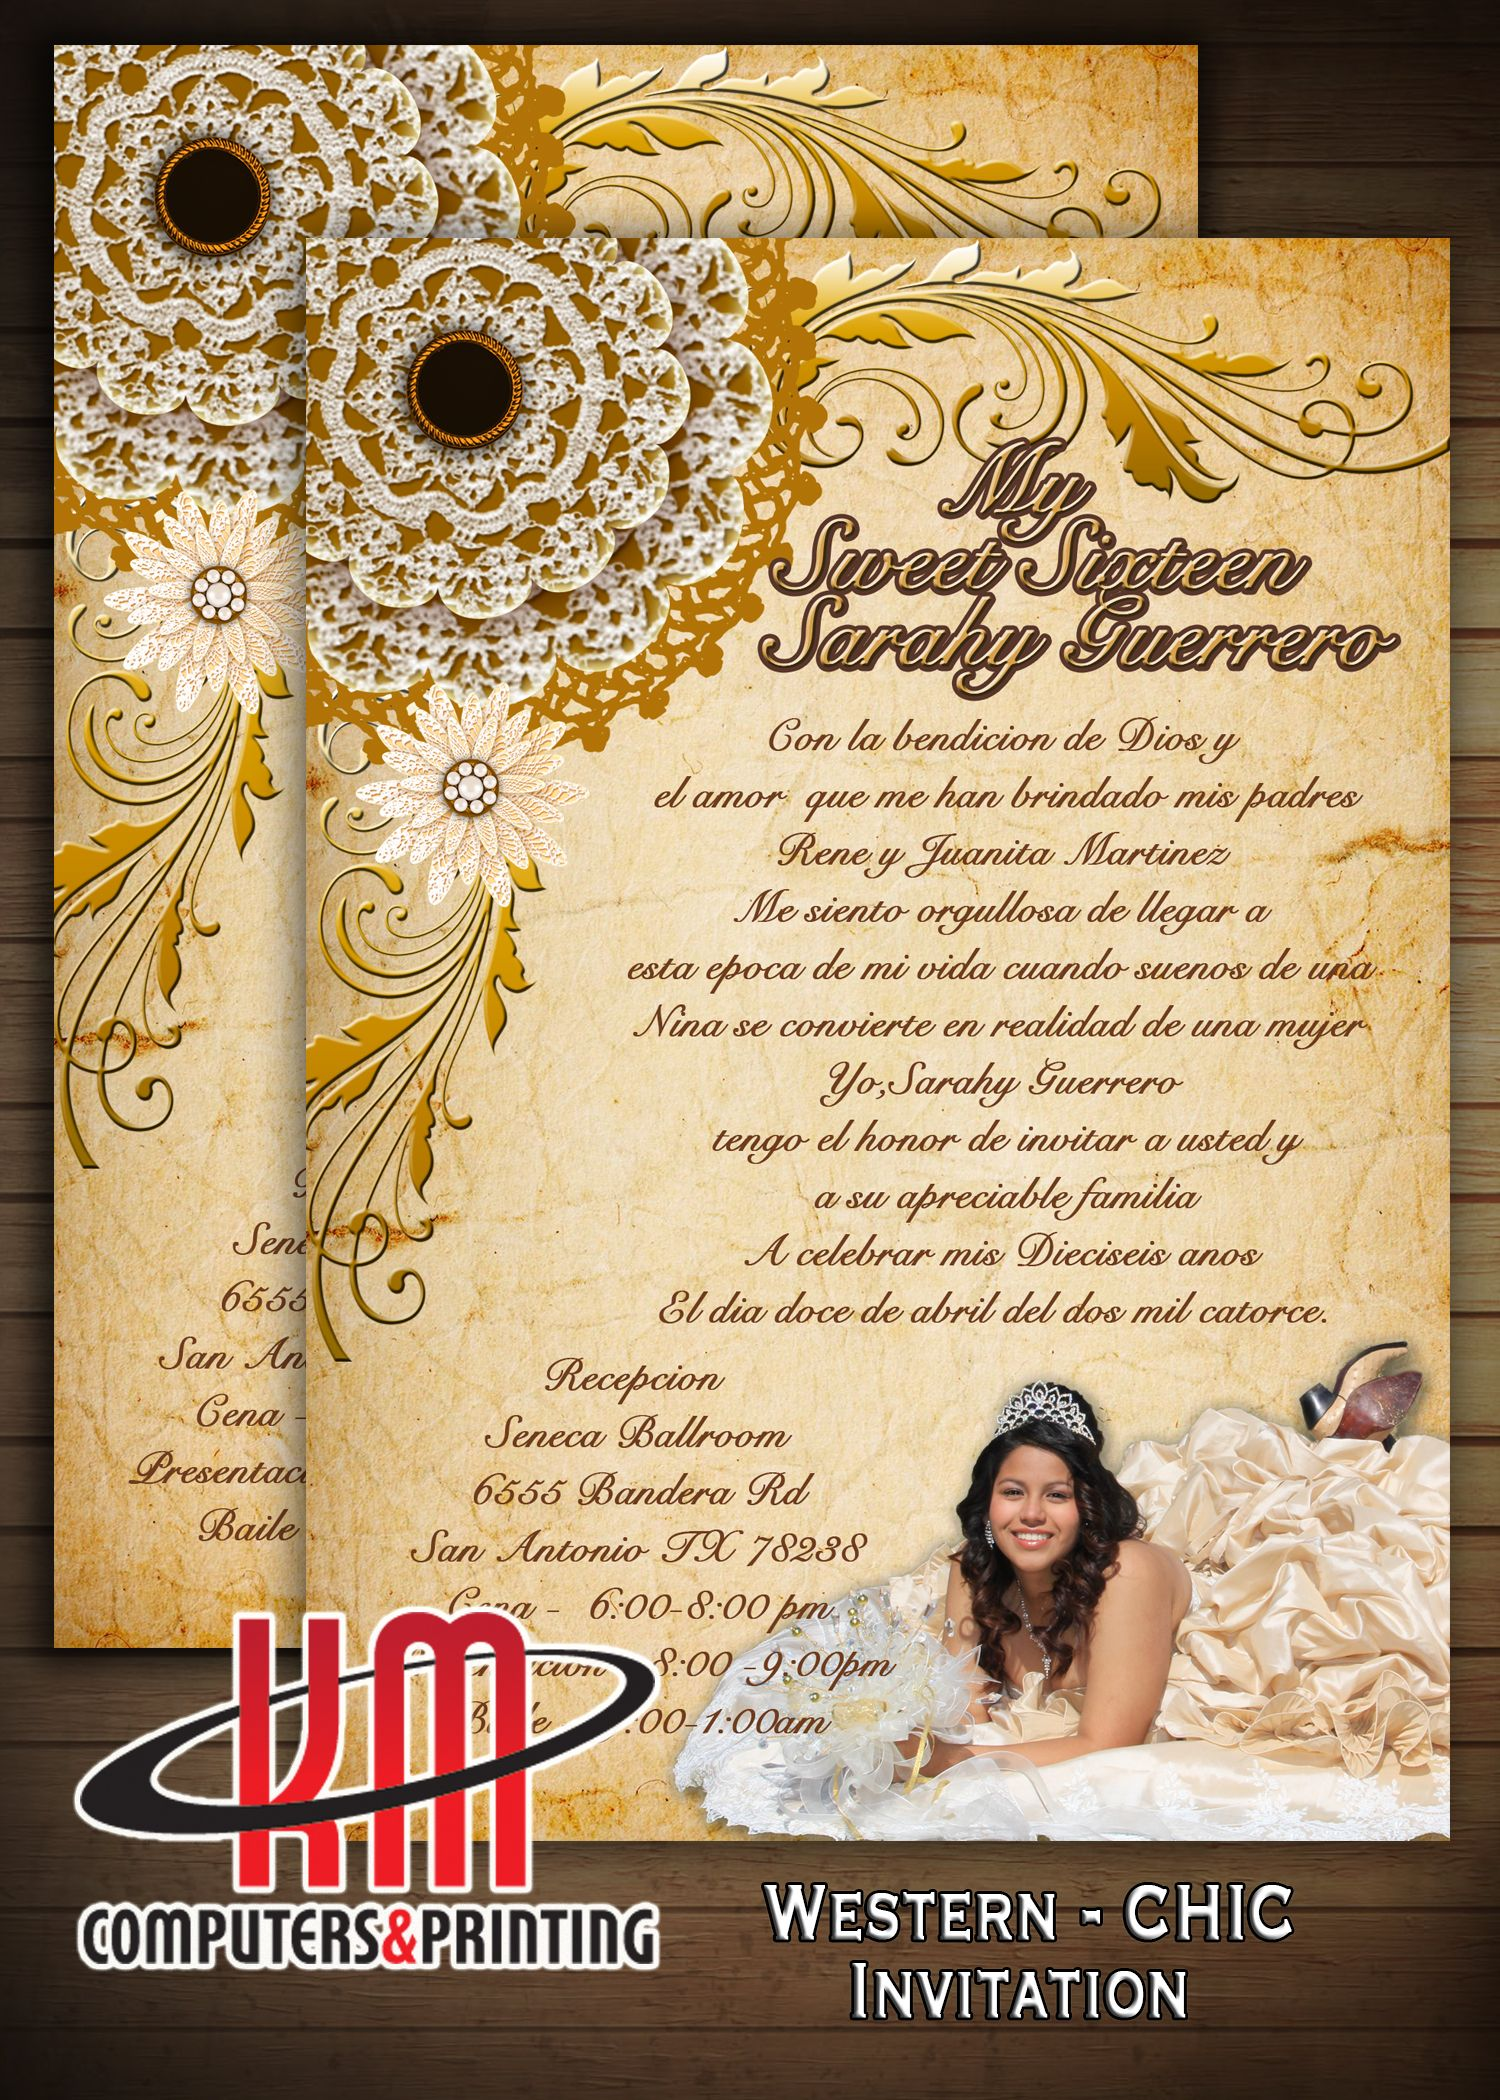 Western Chic Invitation 5x7 Wedding Xv Anos Bridal Shower